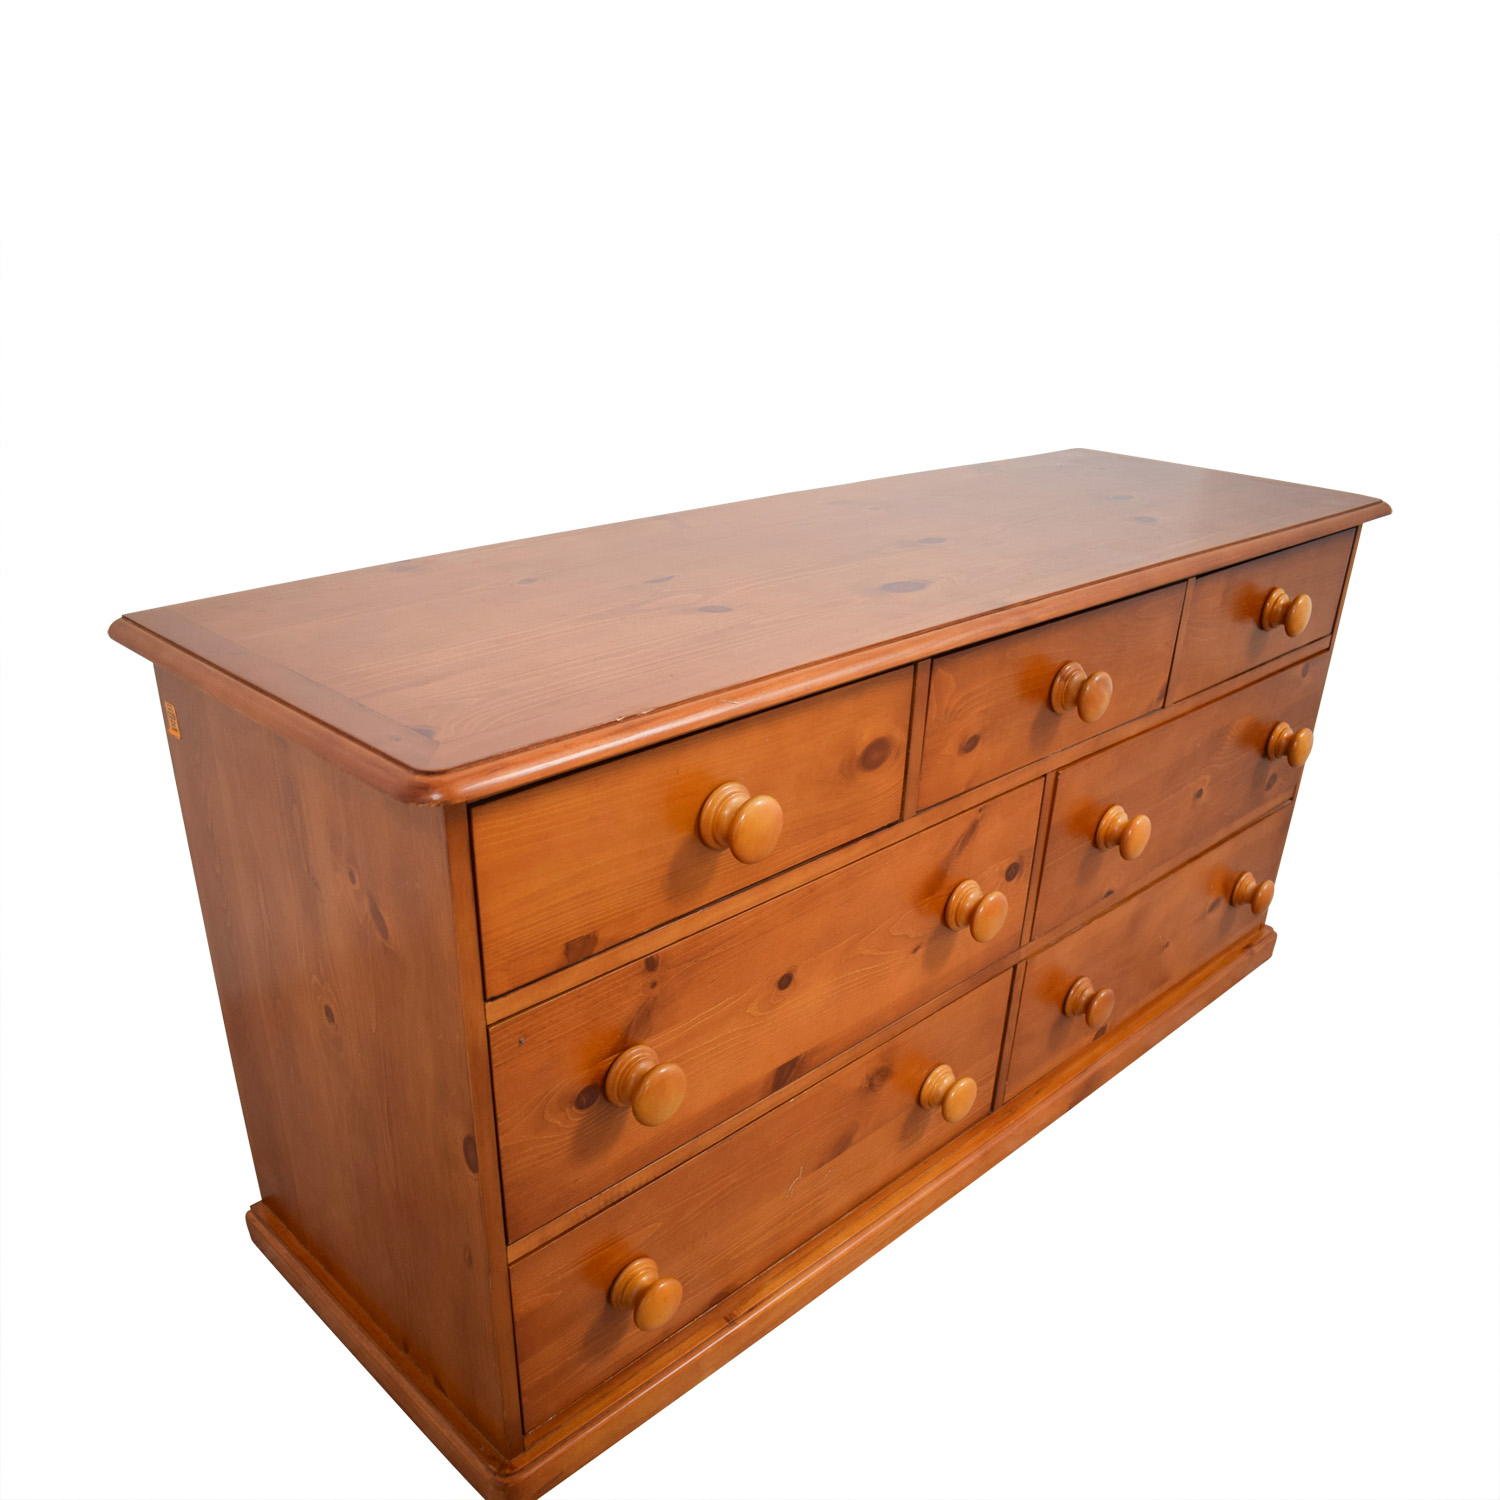 80 off pottery barn pottery barn seven drawer chest of drawers storage. Black Bedroom Furniture Sets. Home Design Ideas